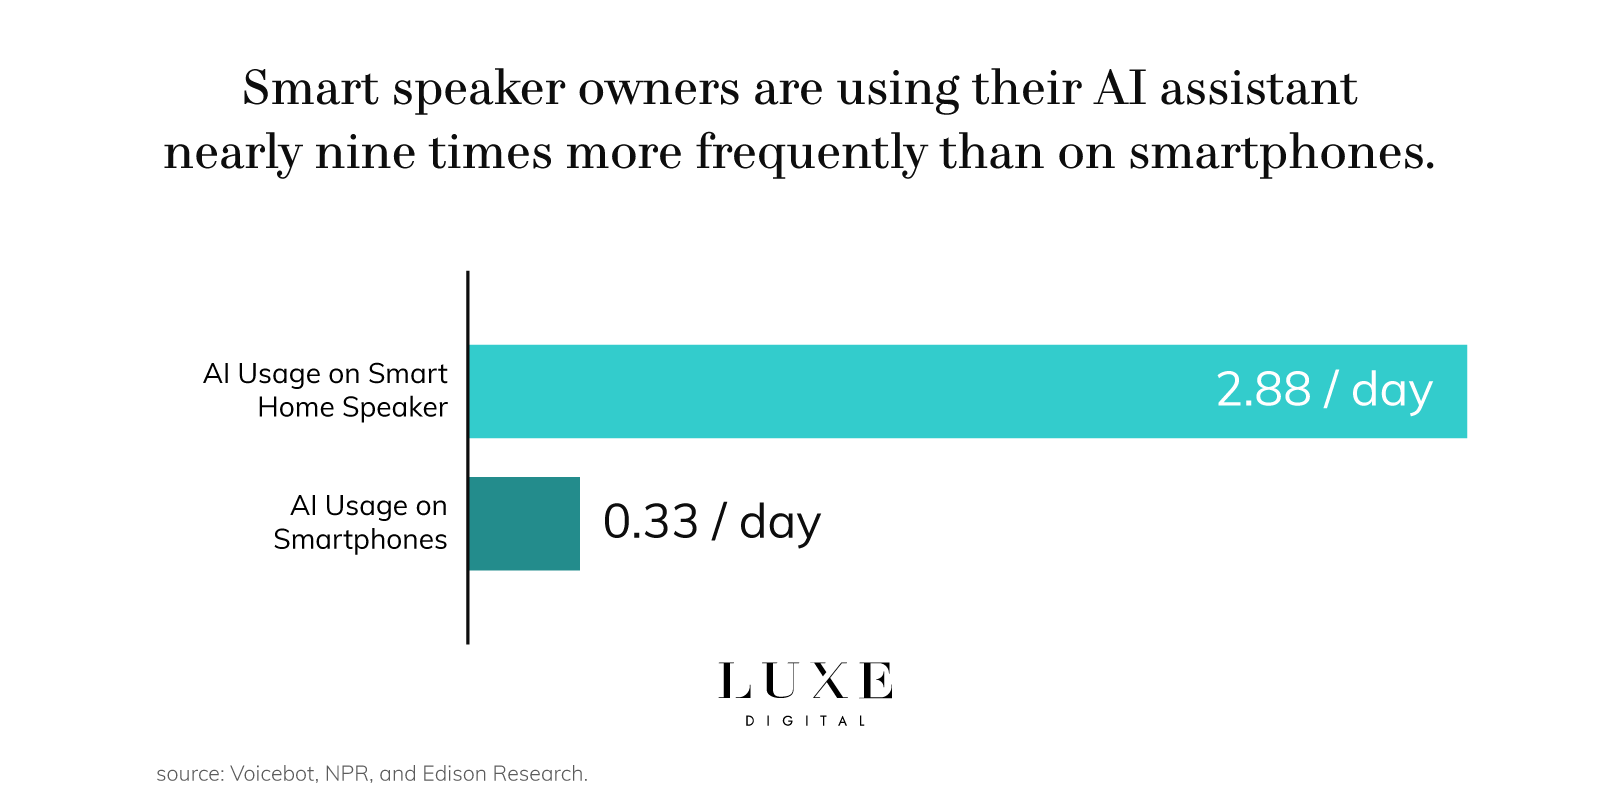 Luxe Digital luxury retail technology ai assistant usage